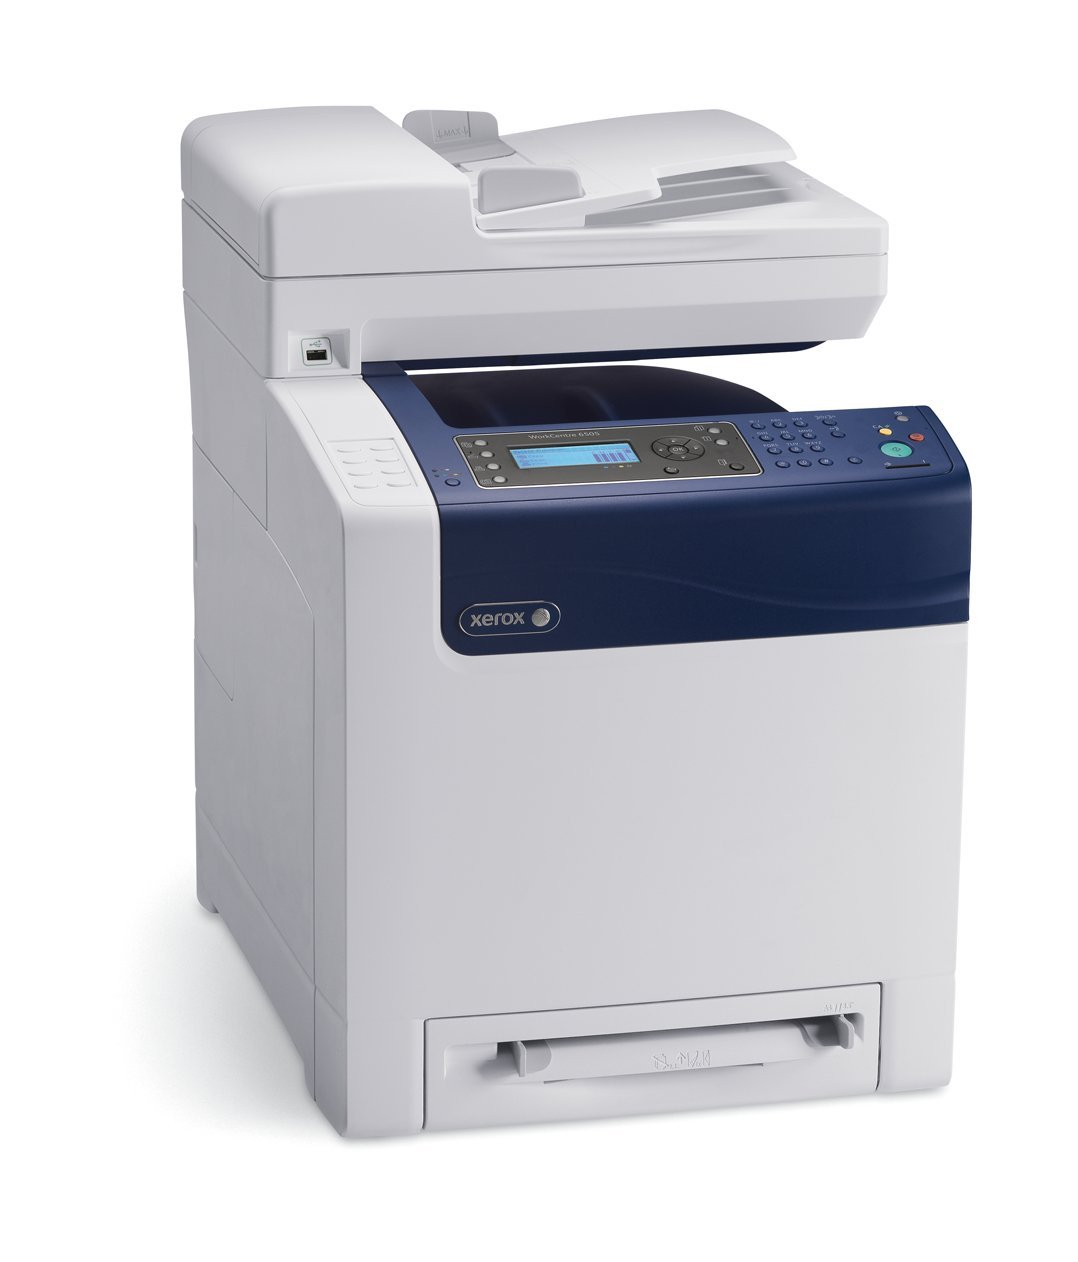 Xerox WORKCENTRE 6505N COLOR LASER MFP